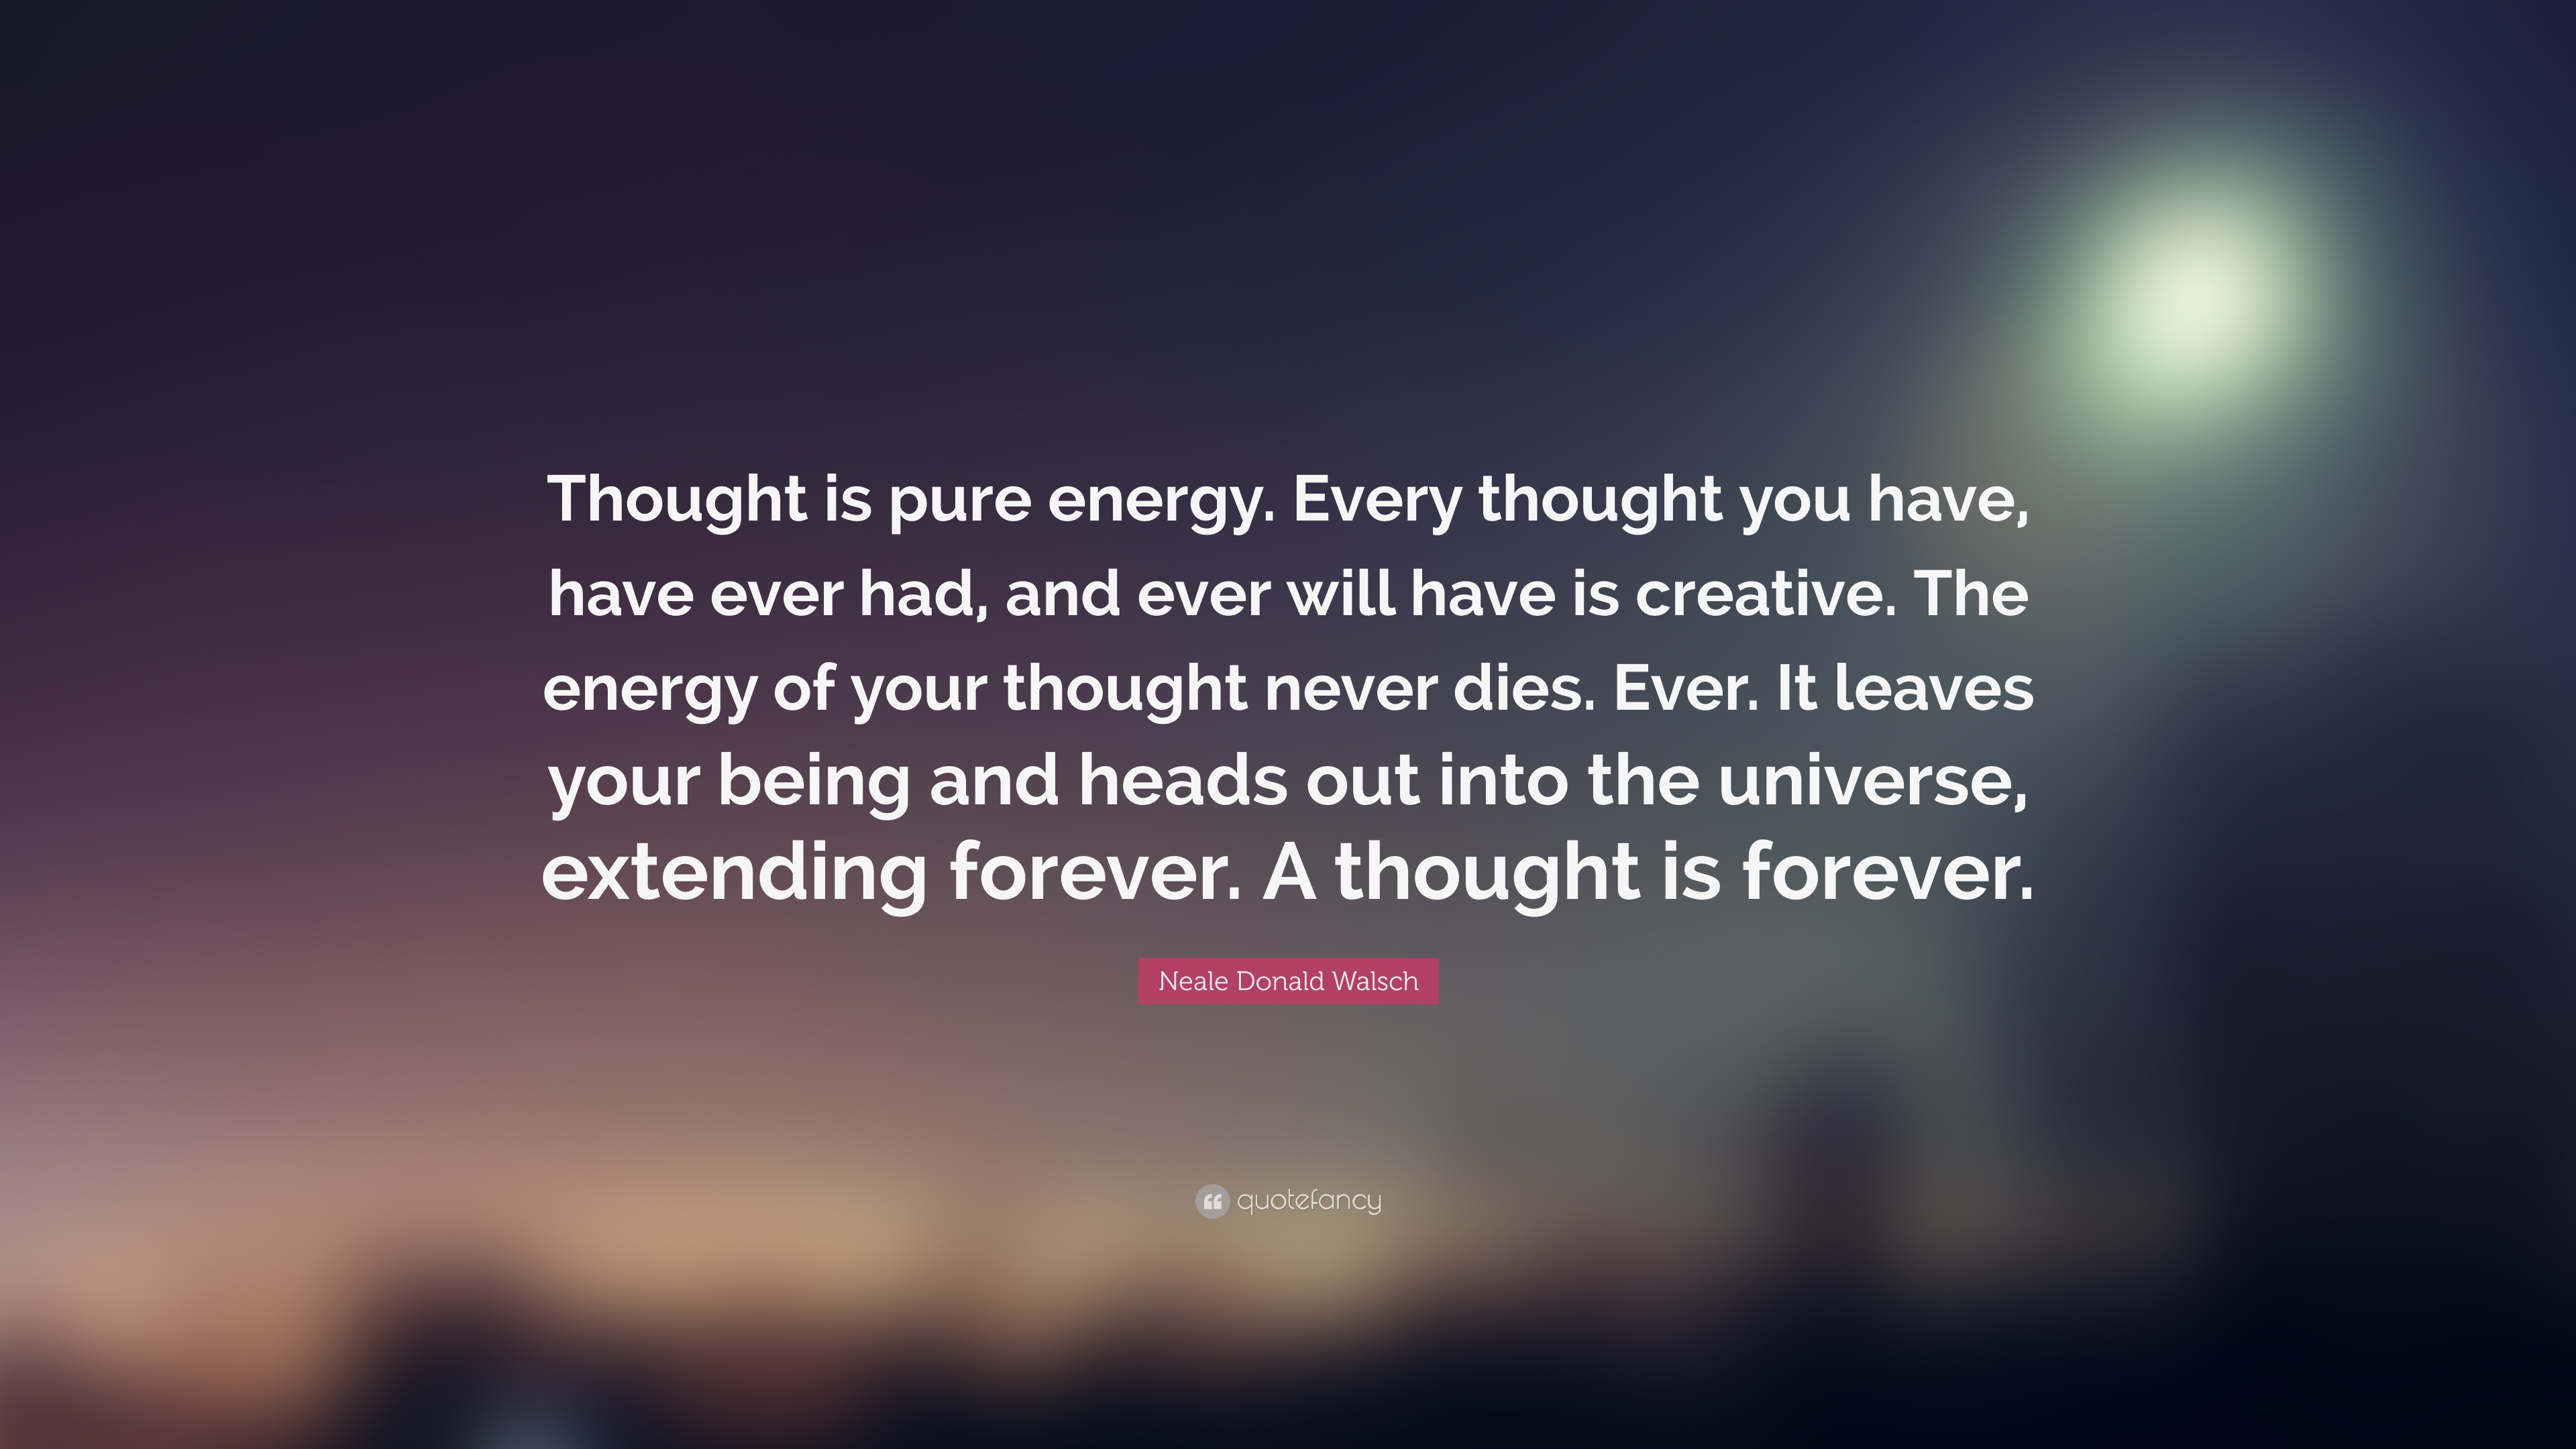 neale donald walsch quote thought is pure energy every thought